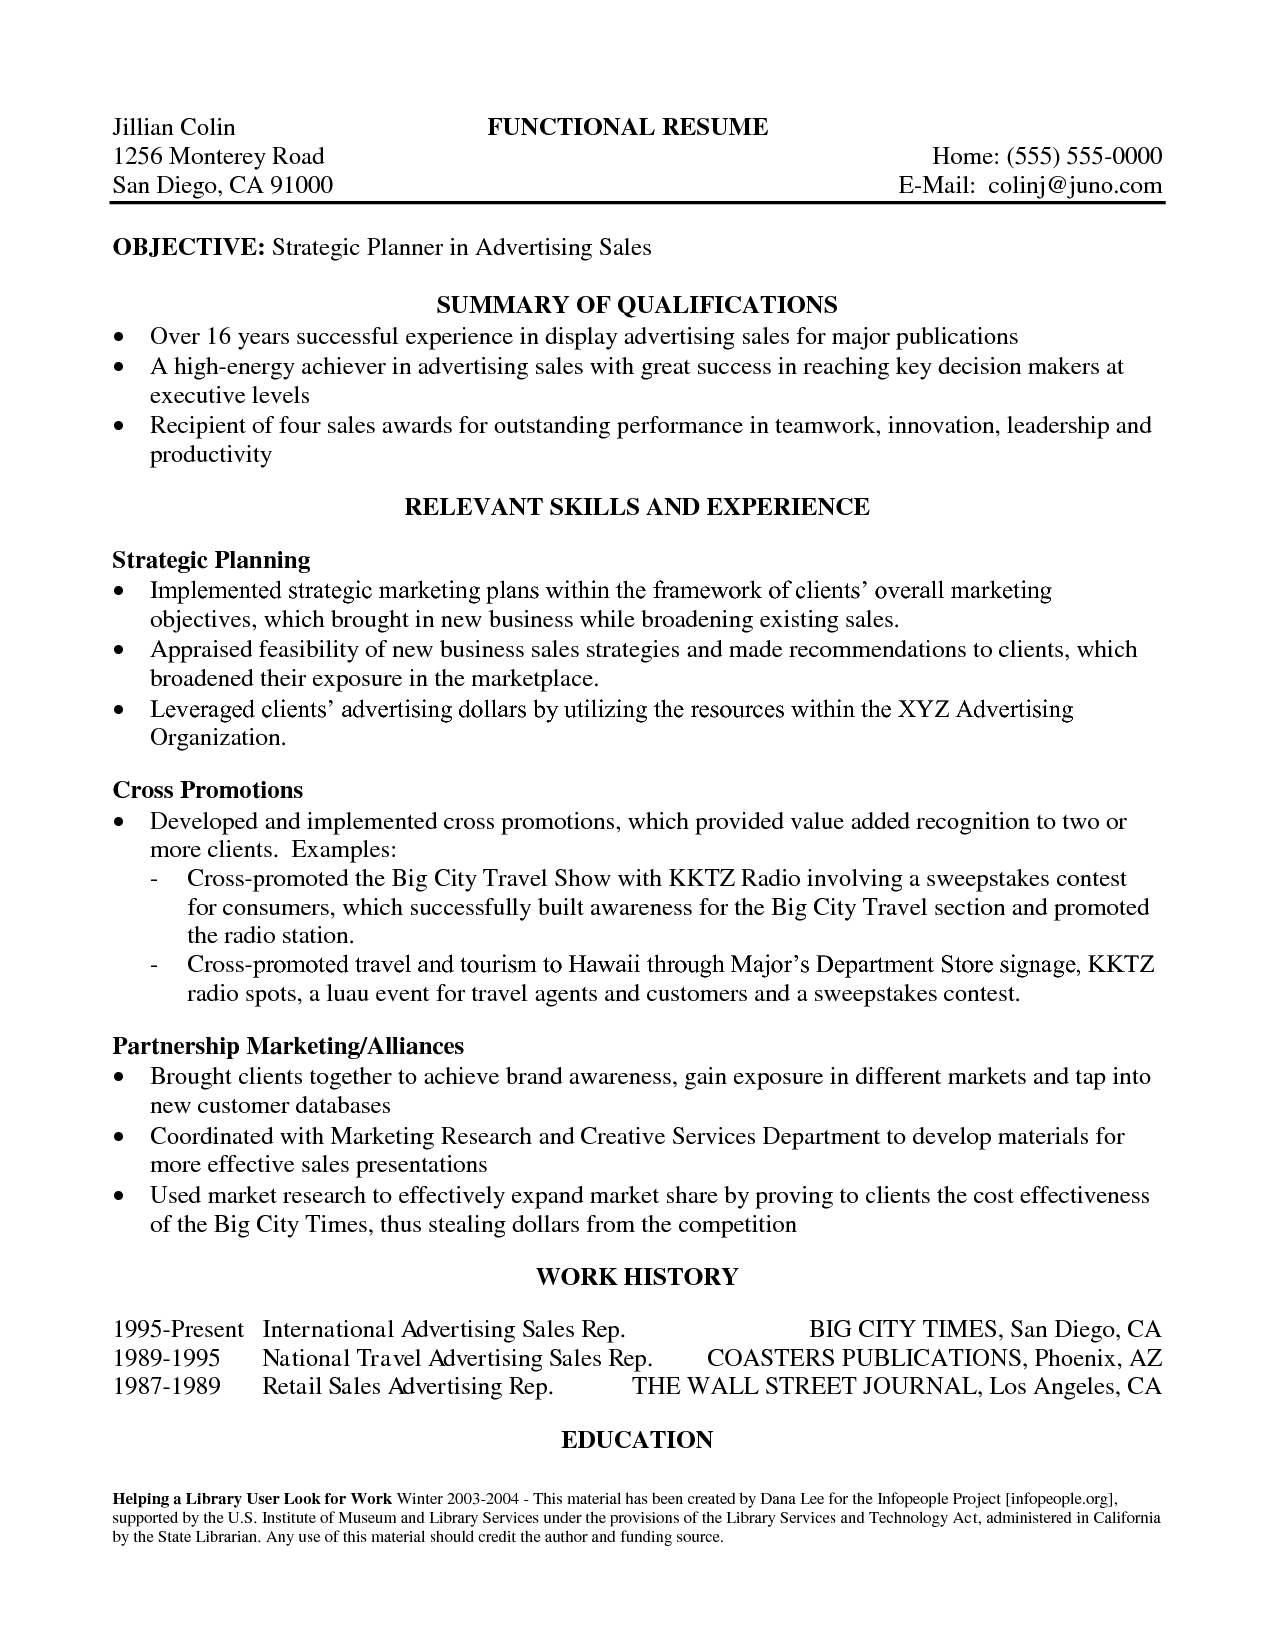 Example Of A Summary For A Resume Classy Resume Examples Summary  Resume Examples  Pinterest  Resume Examples